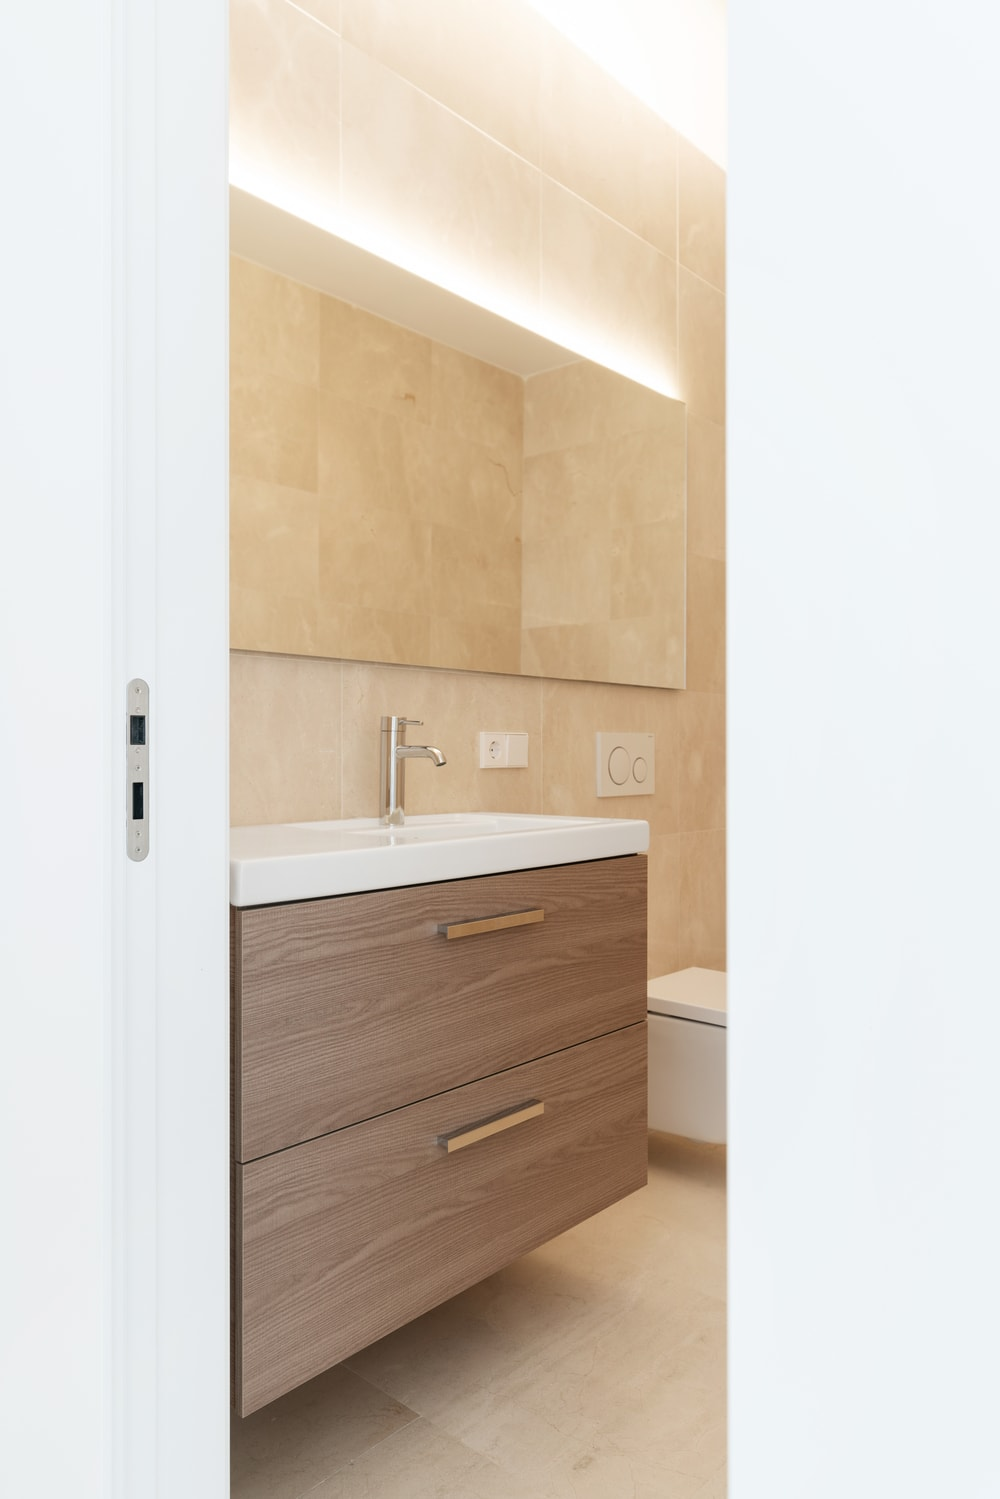 This other bathroom has a white sliding wooden door that opens up to the vanity beside it. This is followed by the toilet that stands out against the beige marble walls.